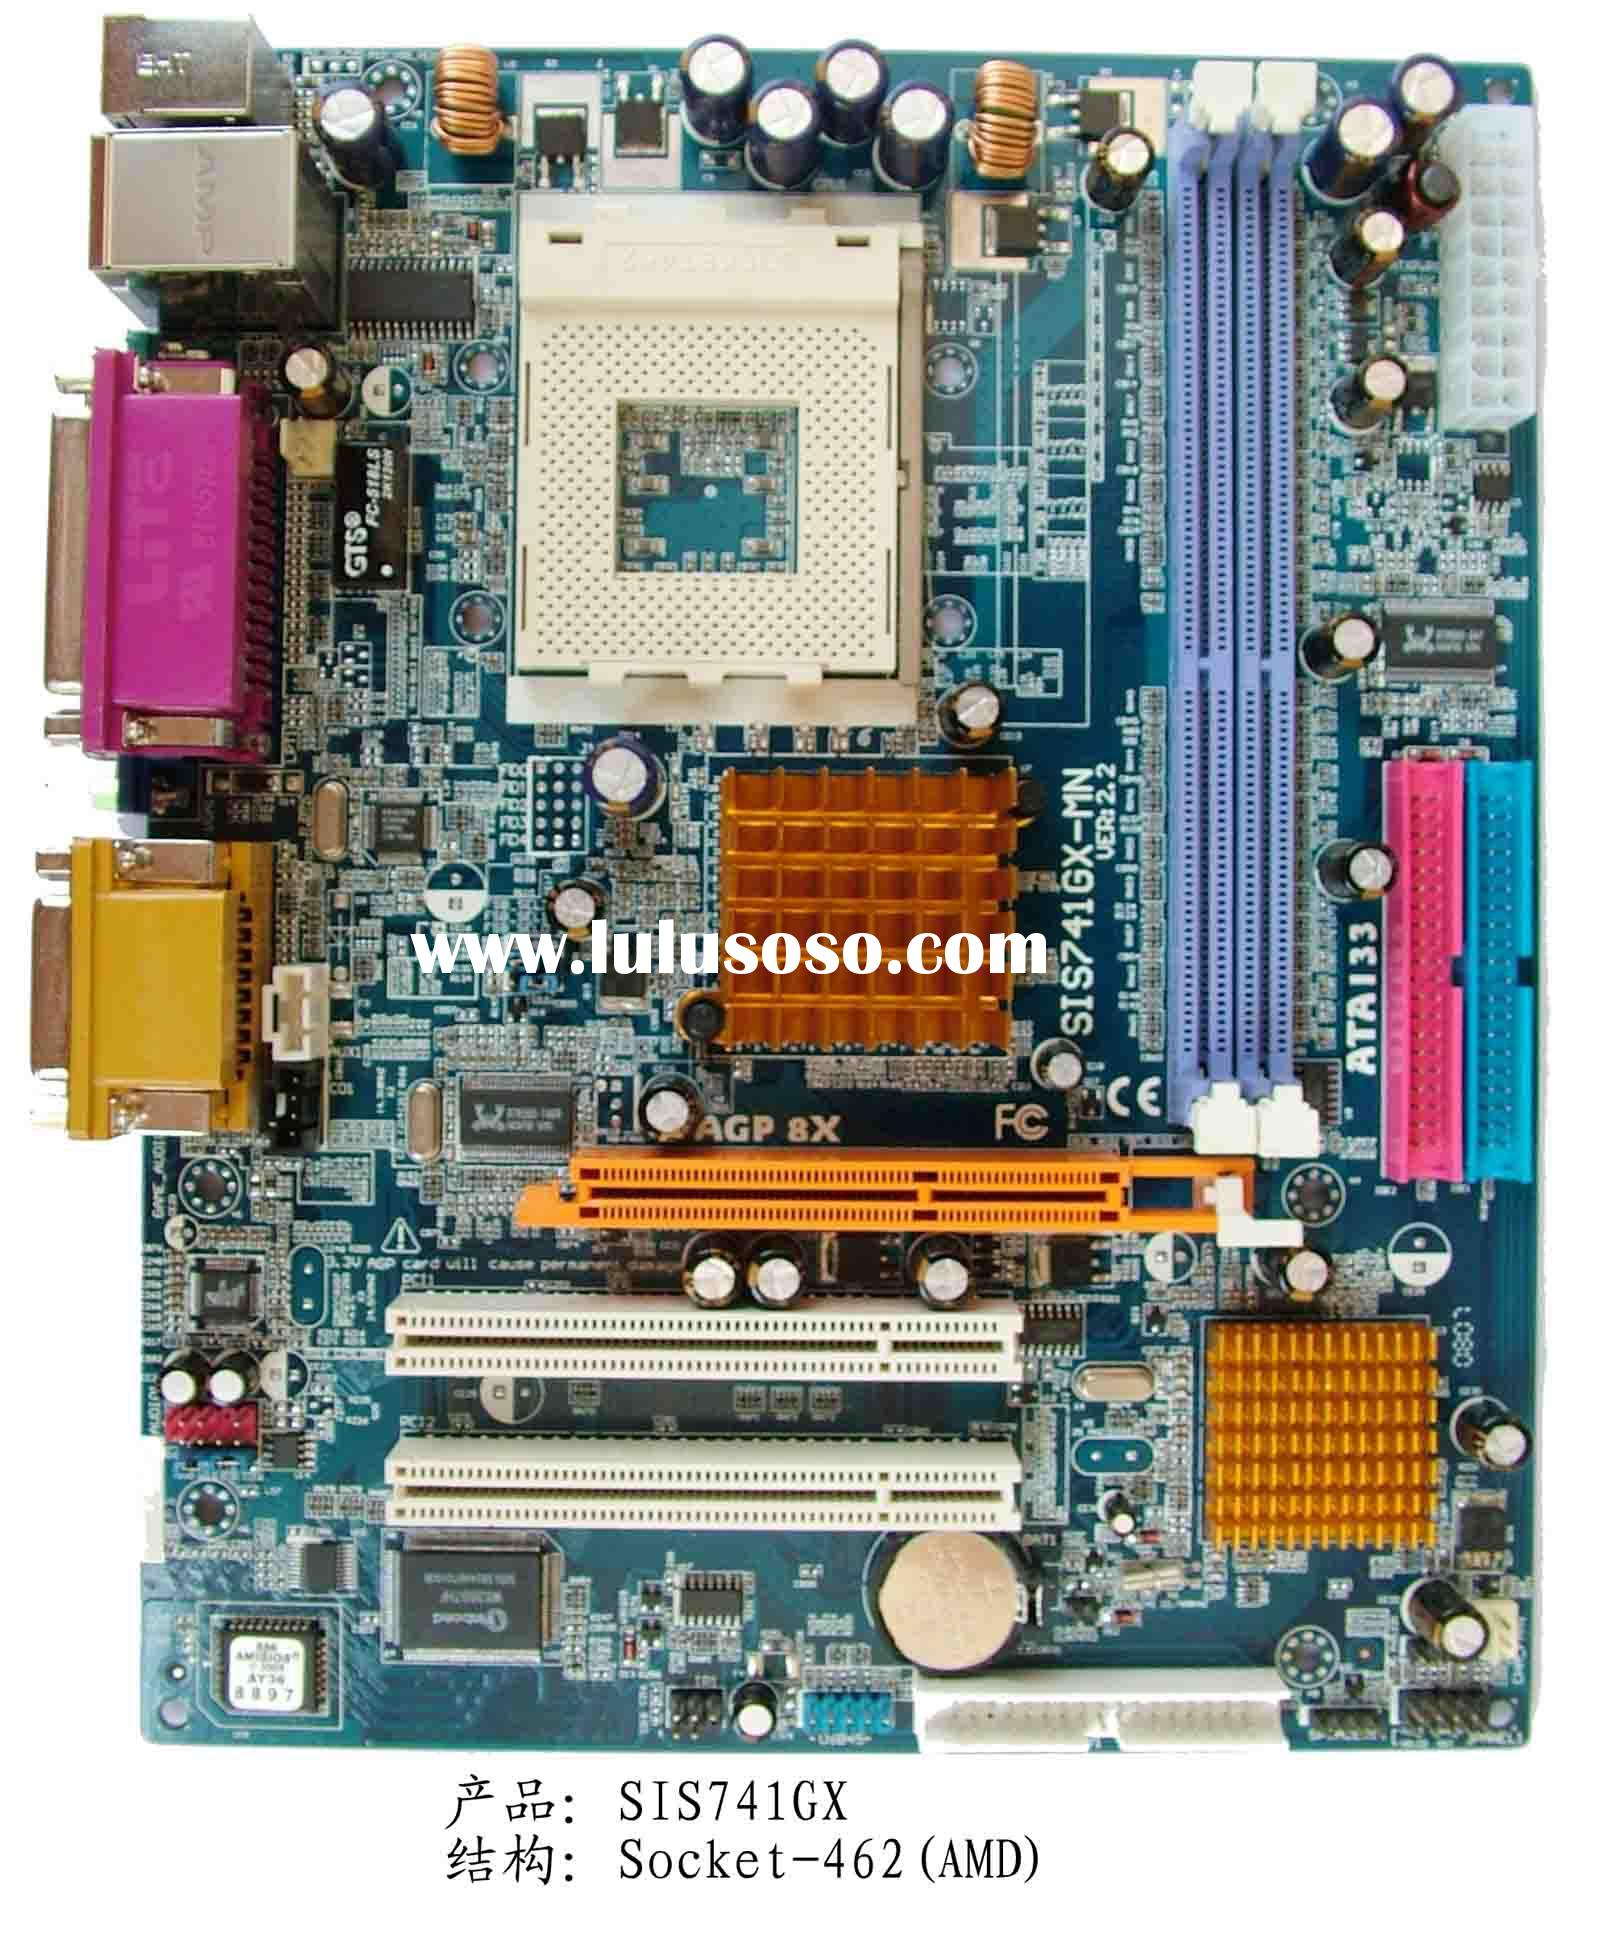 Motherboard SIS 741GX Socket A(462) for AMD processor